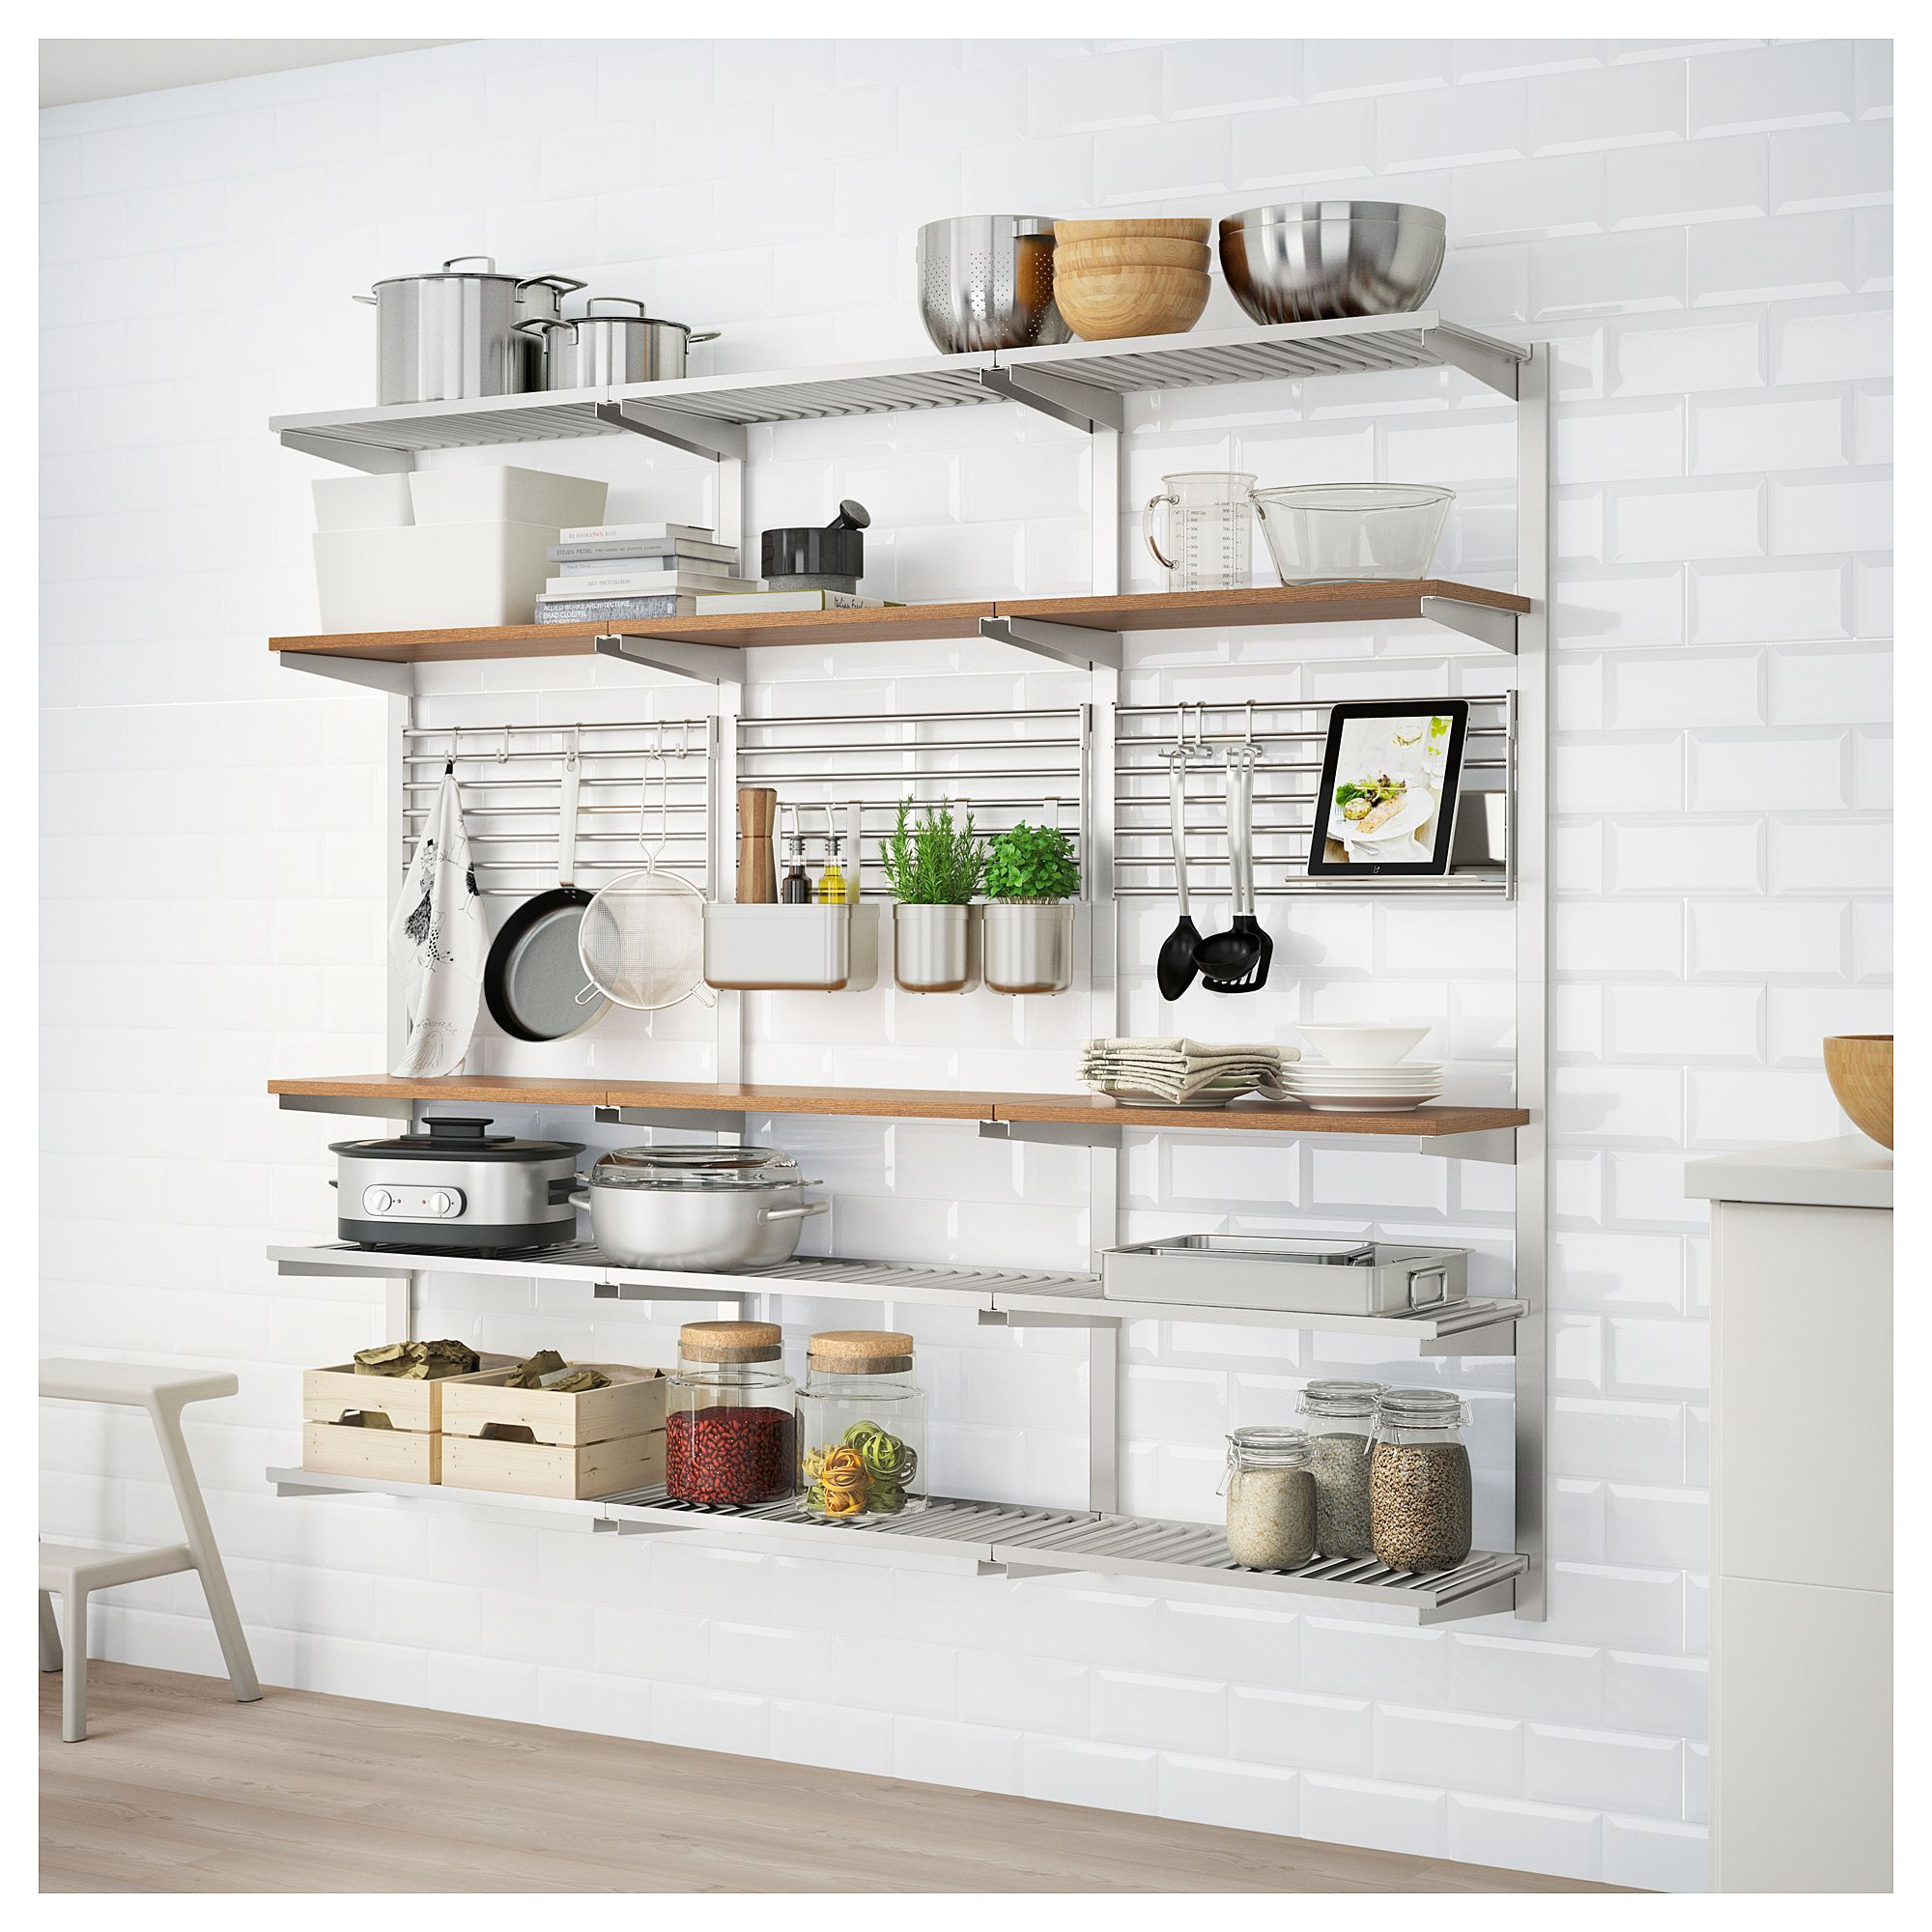 ikea kungsfors suspension rail with shelf wll grid stainless steel in 2020 shelves kitchen on kitchen organization japanese id=18000